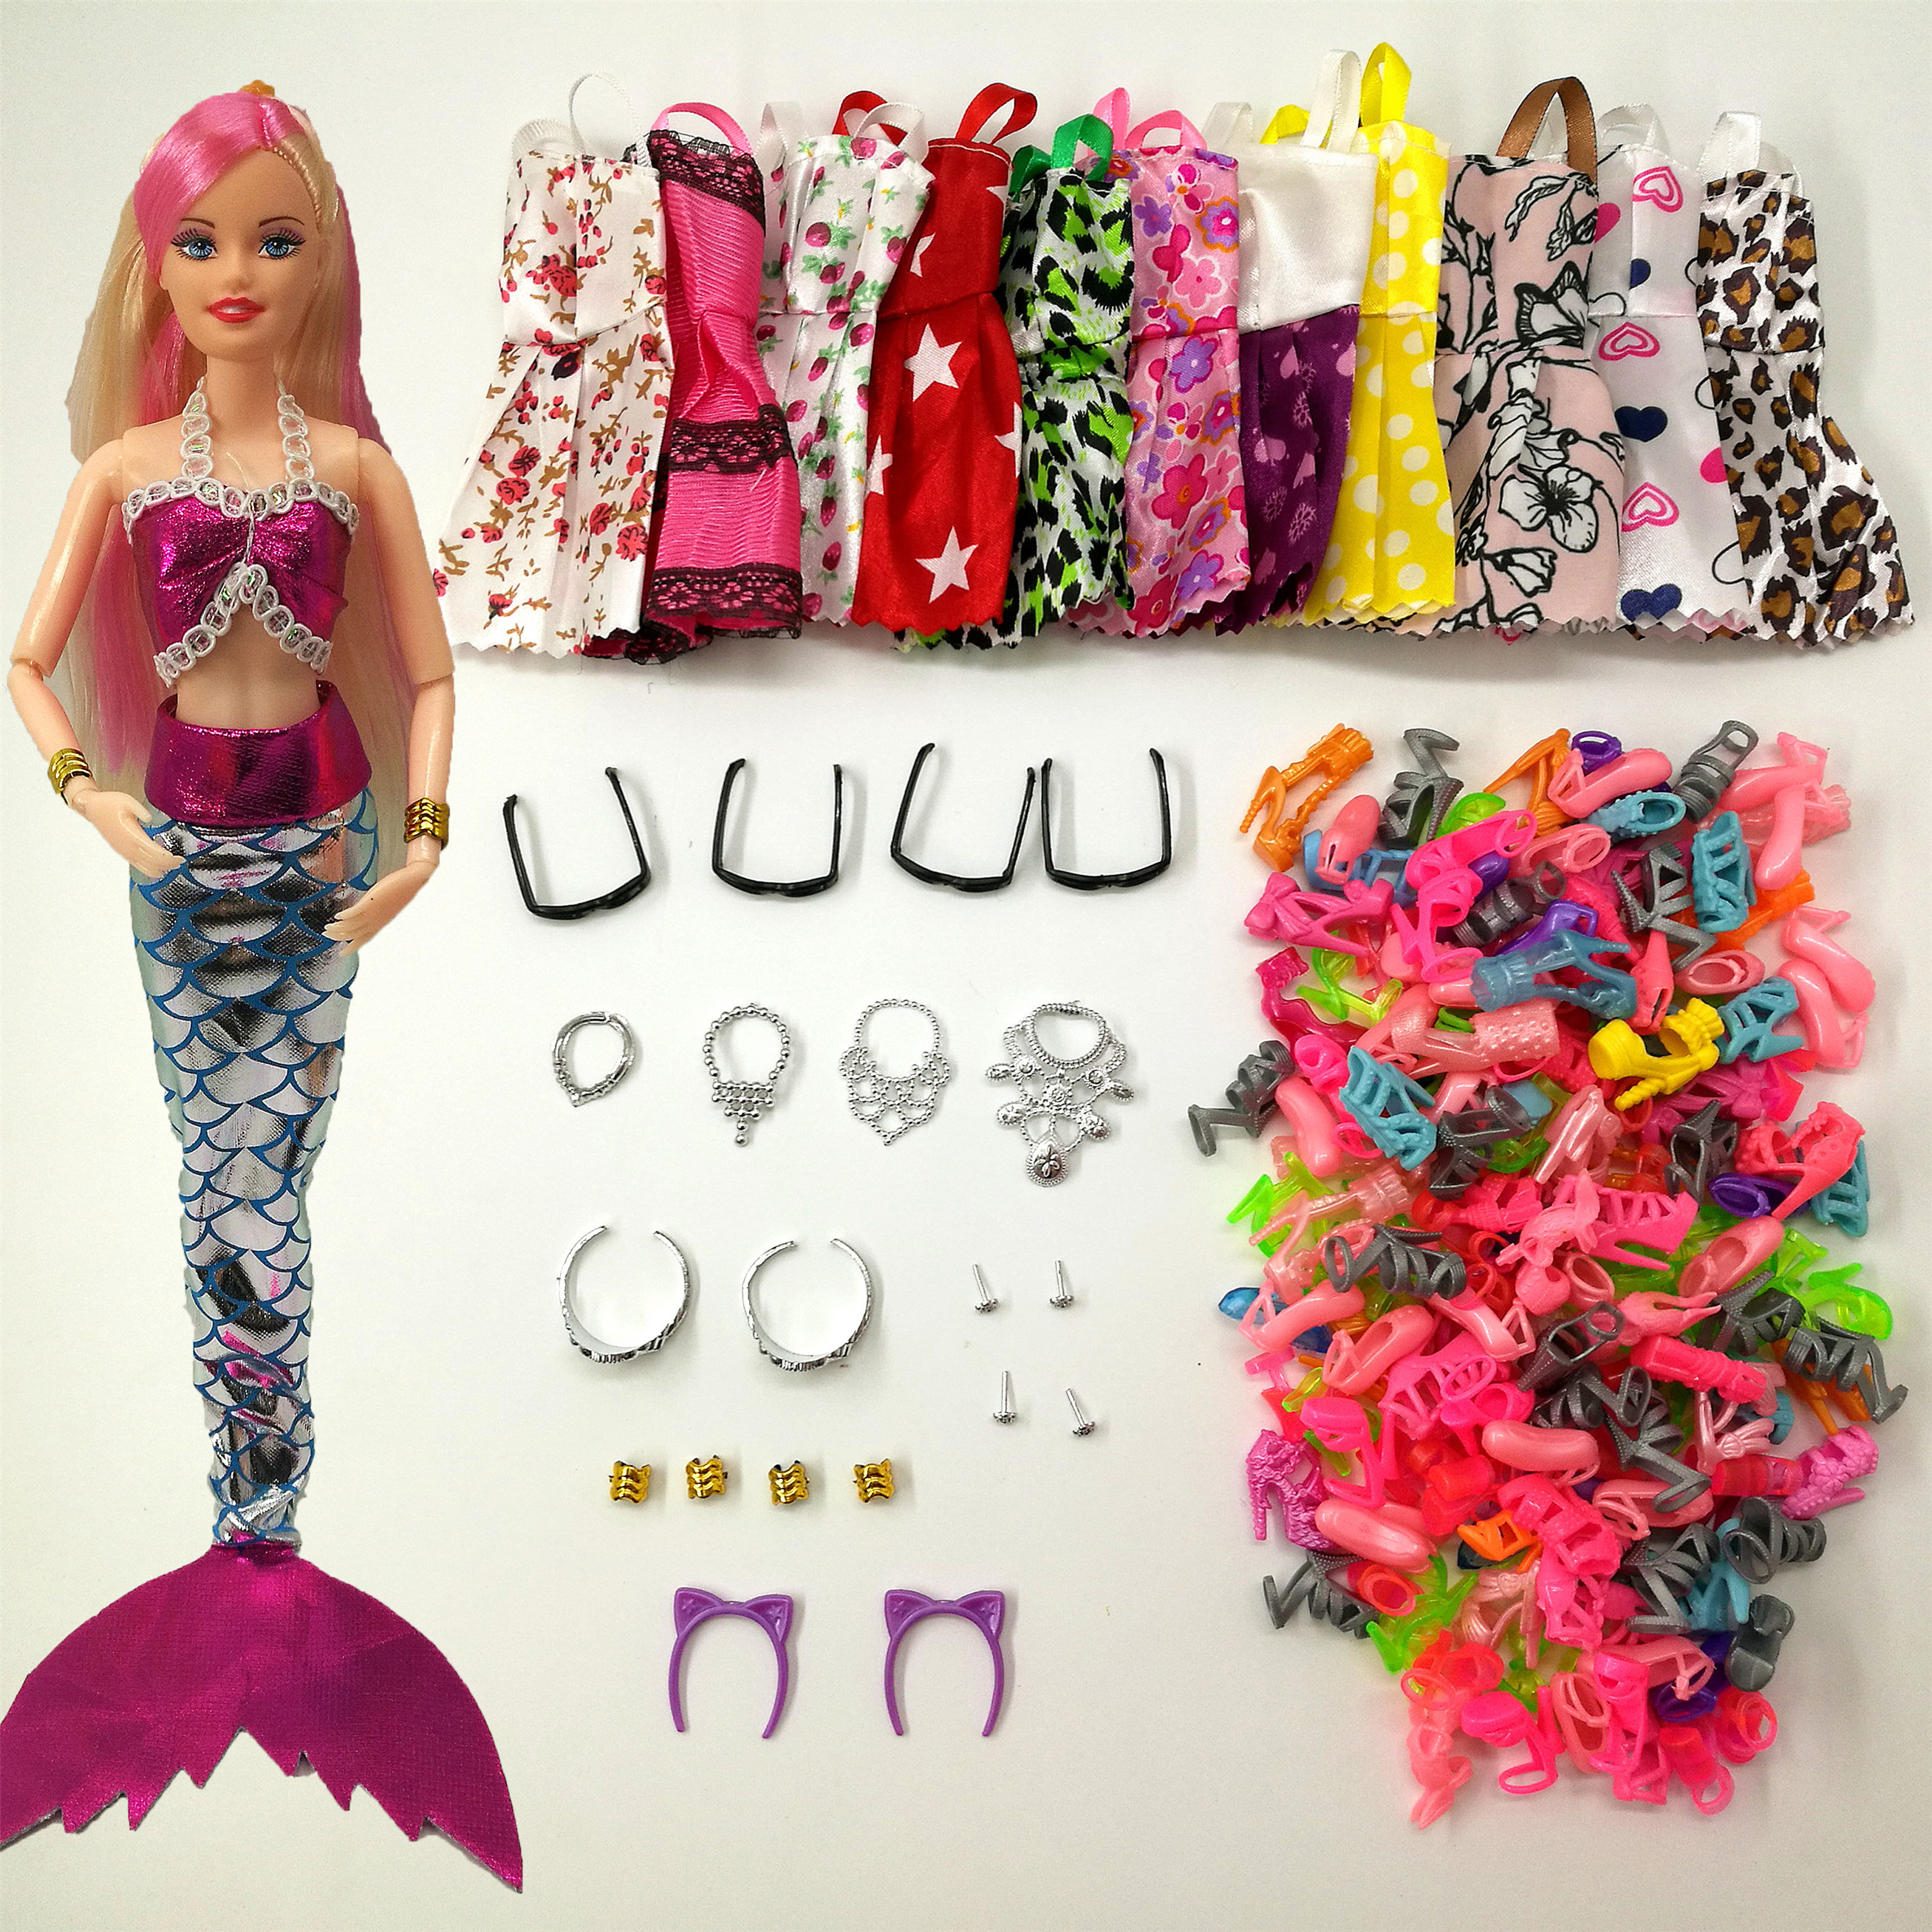 33 Item/Set Doll Accessories = 8Pcs Shoes + 4 Necklace 4 Glasses 1 Mermaid Tail Dress + 8 Pcs Doll Dress Clothes For Barbie Doll